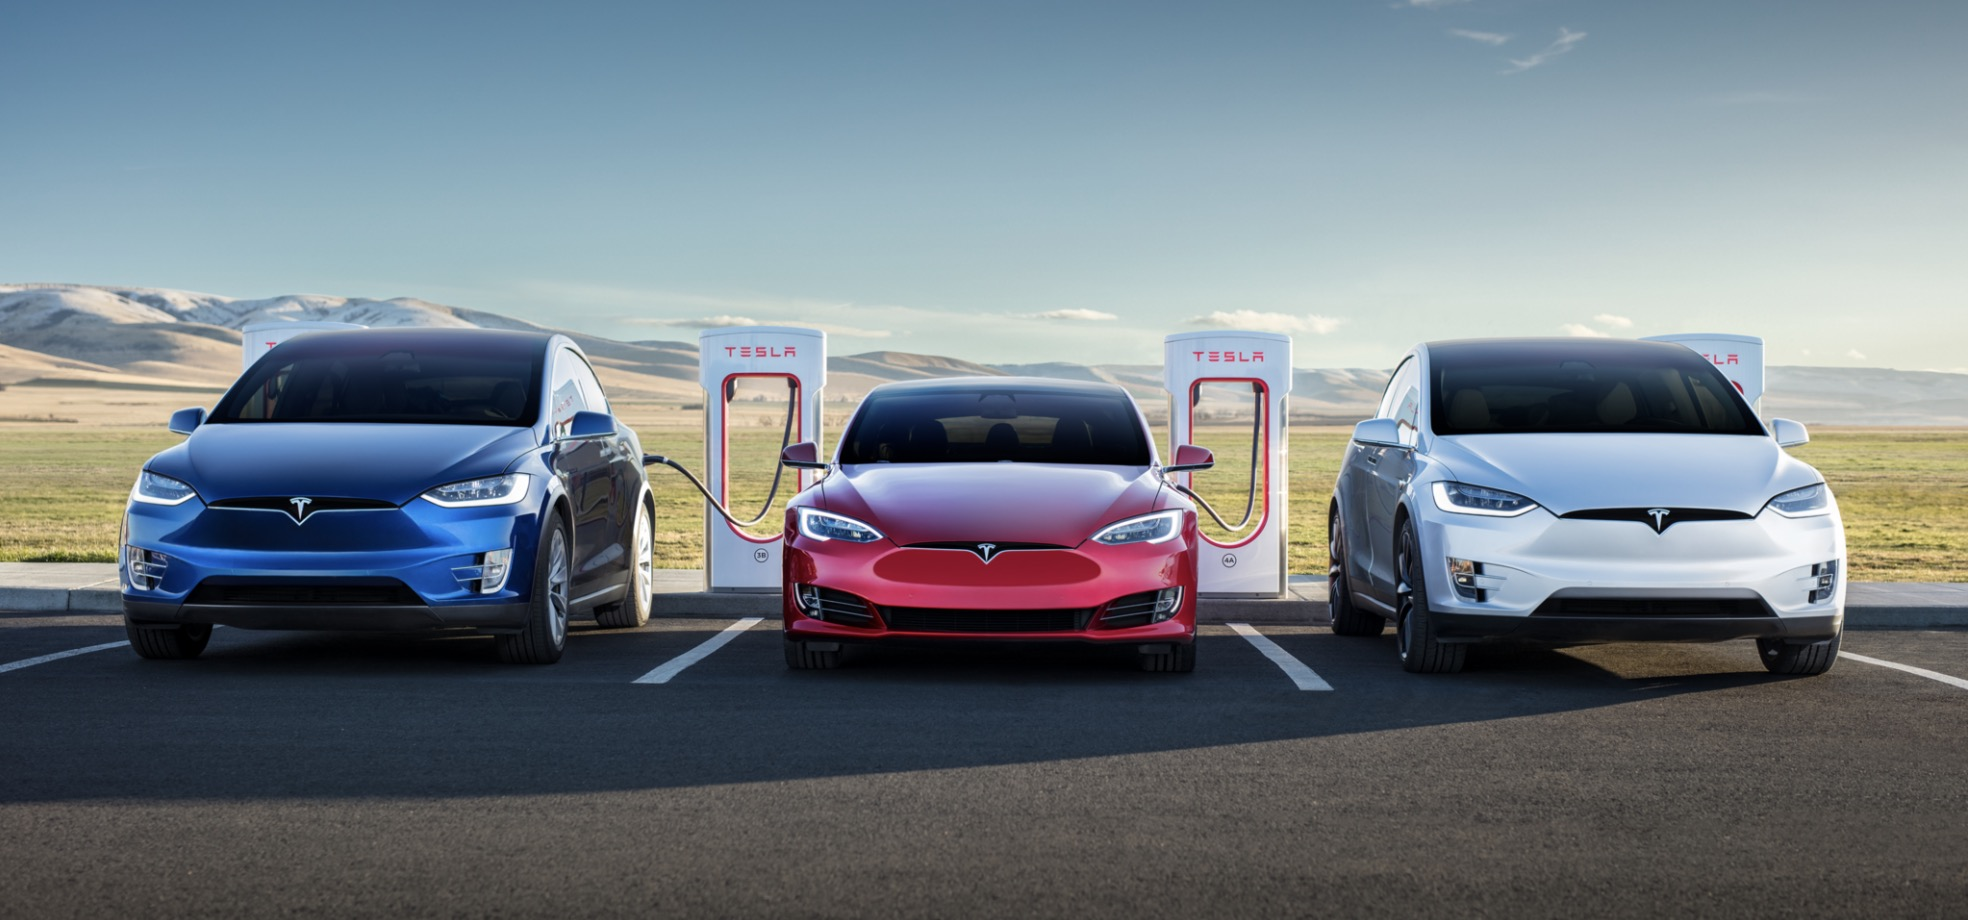 Tesla vehicles still hold values better than competition on used market, study shows